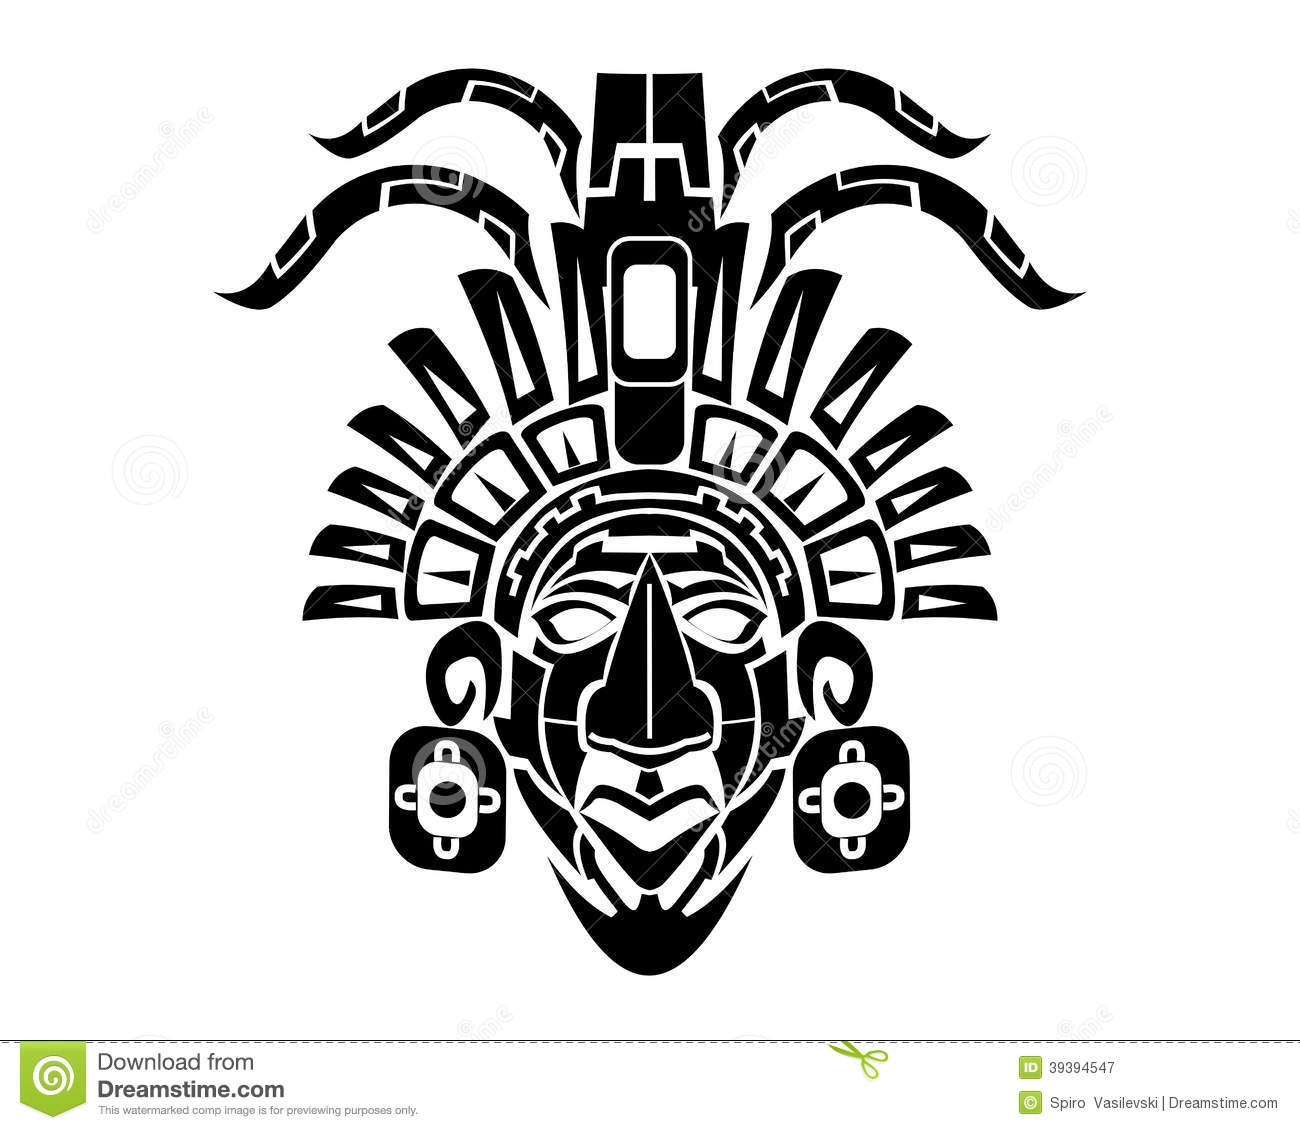 Drawings Of New Fire Truck additionally Camion 4 moreover Stock Illustration Boy In Car Cartoon Coloring as well Desenhos Para Colorir Rel ago Mcqueen 8 5 further Photographie Stock Libre De Droits Mack Tribal Tattoo Maya Image39394547. on mack